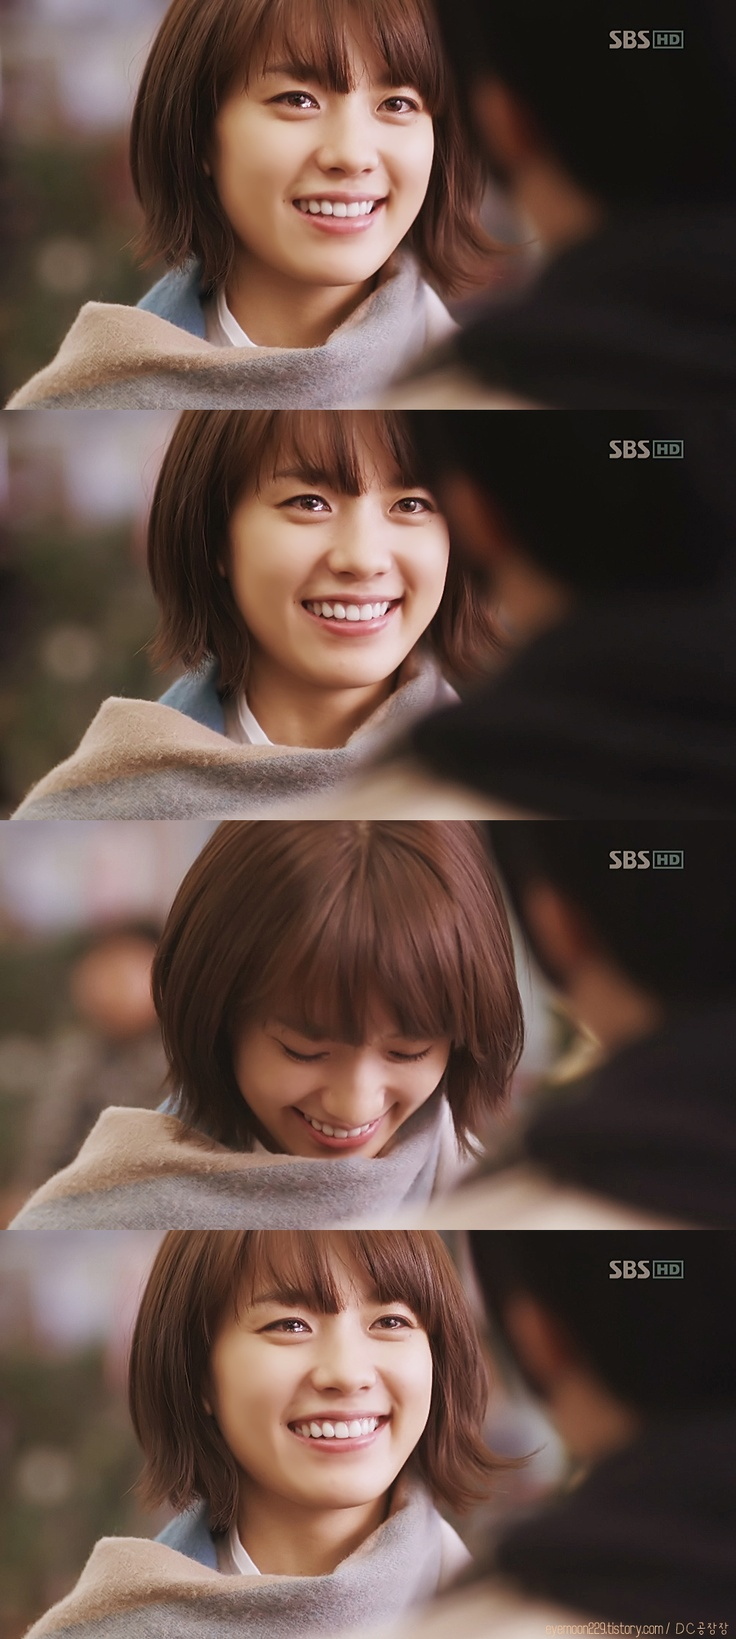 Han Hyo Joo, her smile is awesome :3